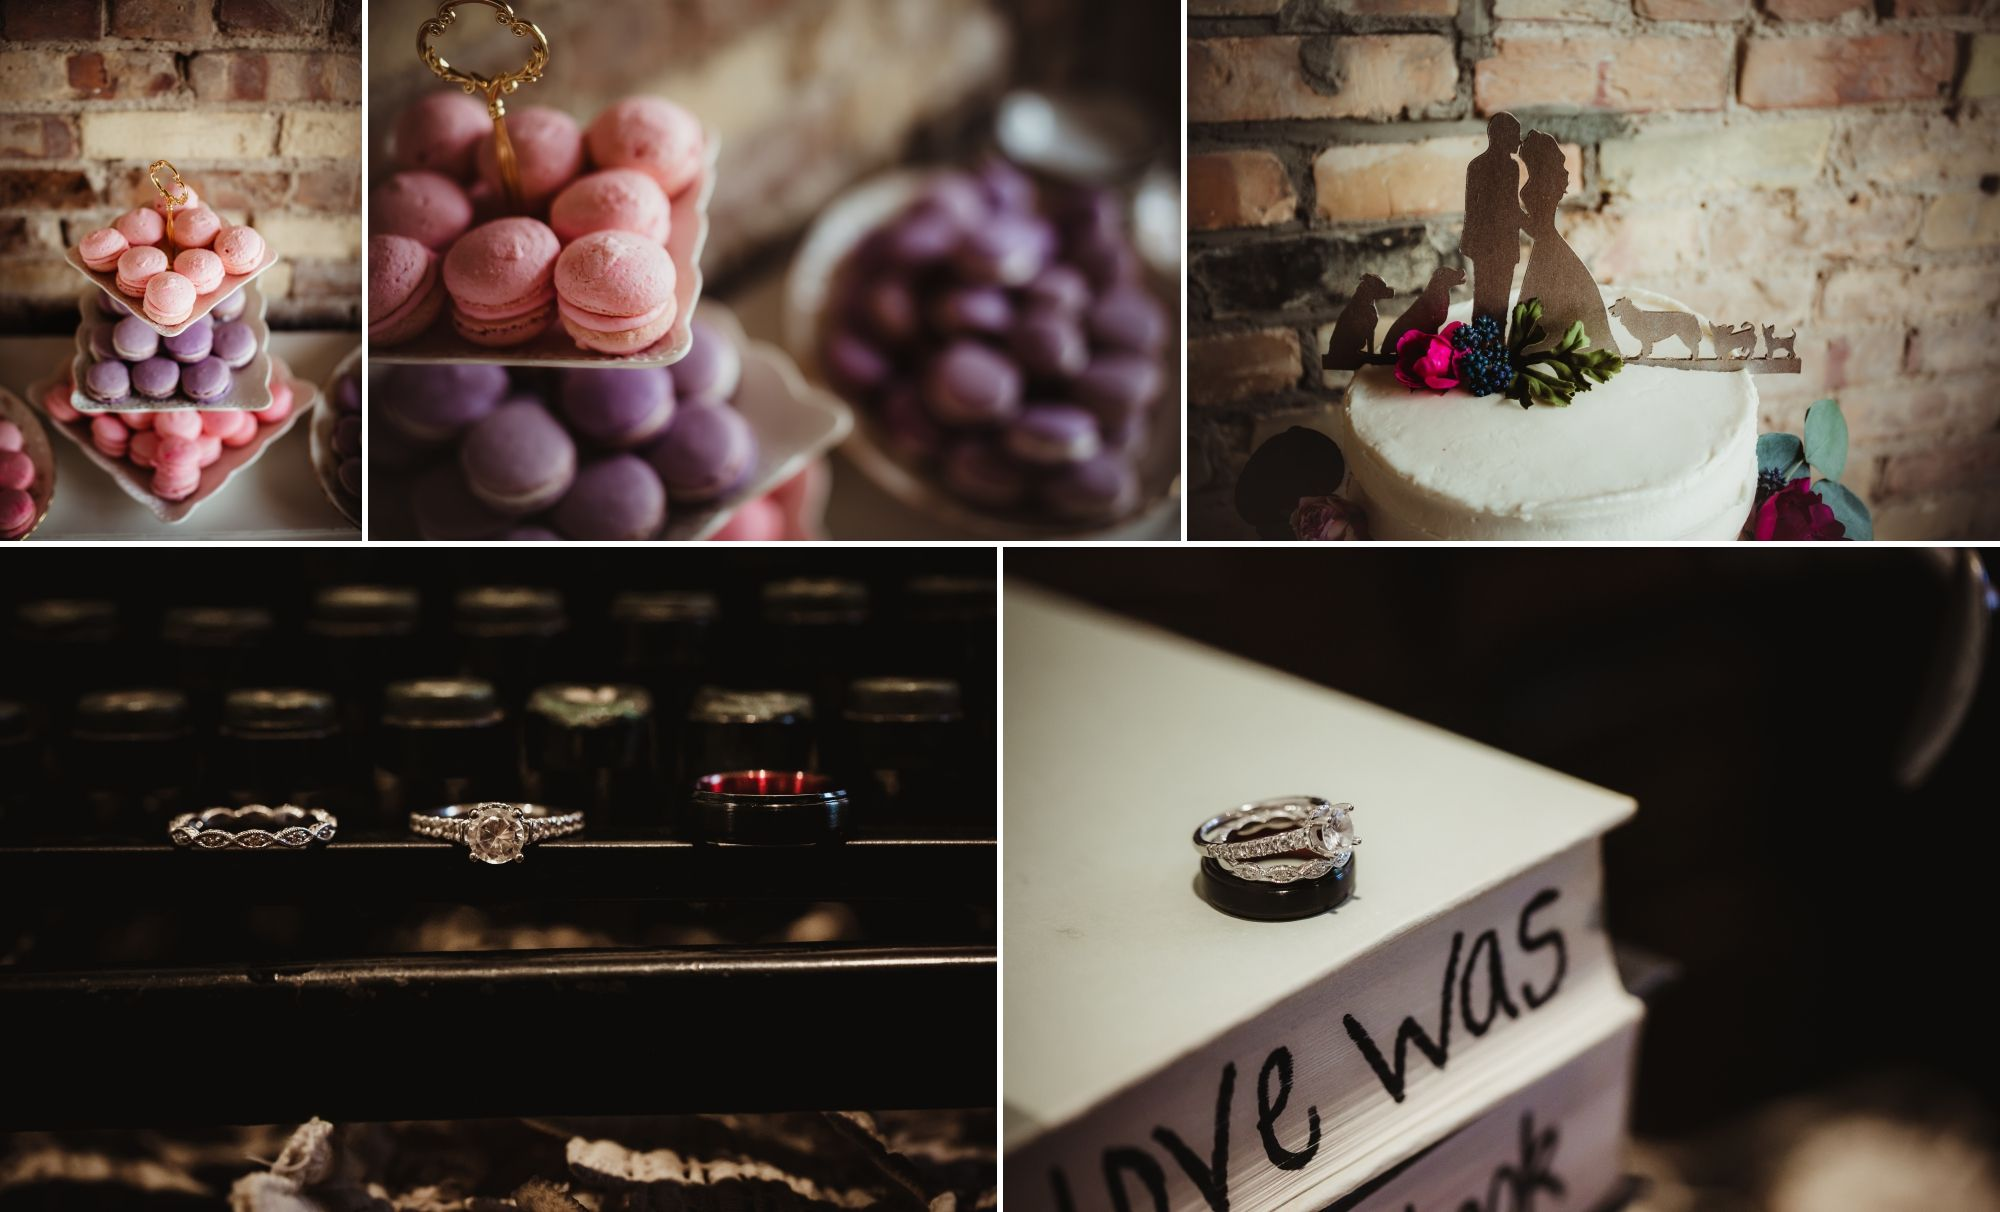 Collage of desserts, cake topper, and rings.